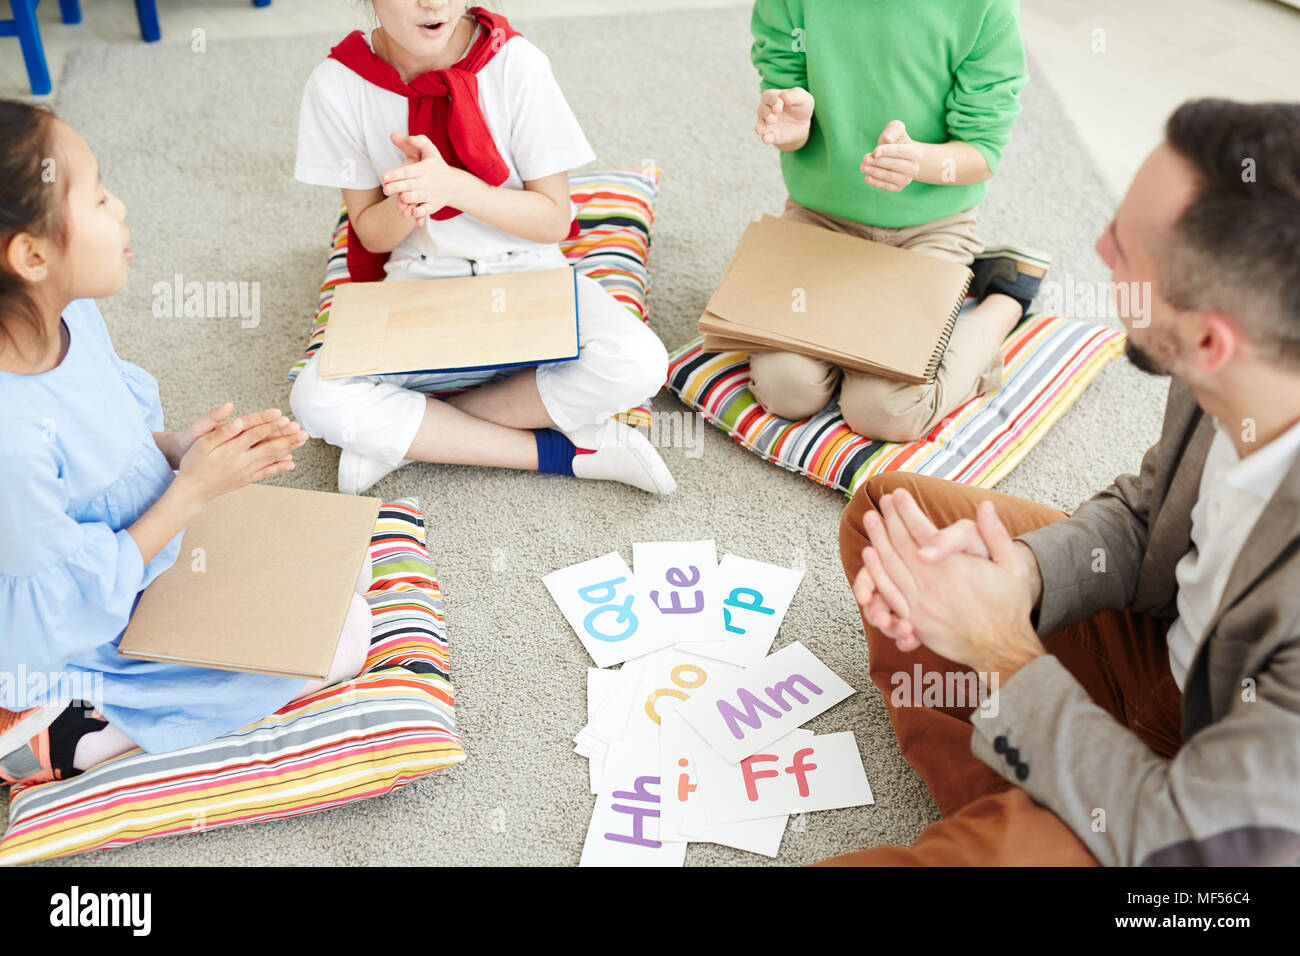 Primary school children and their male teacher sitting on the floor in classroom, playing games and learning alphabet letters - Stock Image